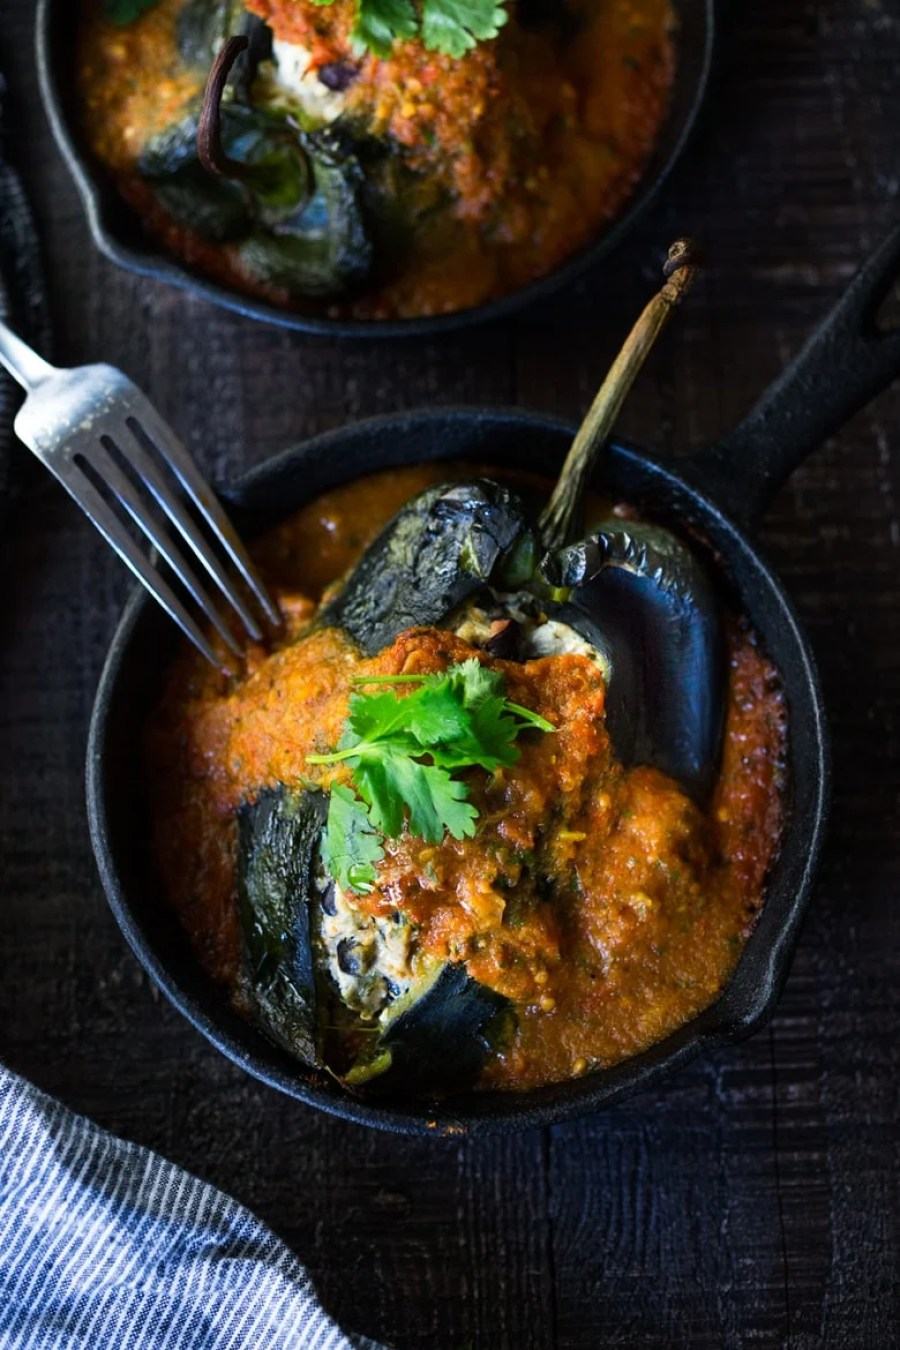 VEGAN Roasted Chile Rellenos with black beans- a healthy lightened up version that is roasted instead of fried and is gluten free! #vegan #chilerellenos | www.feastingathome.com